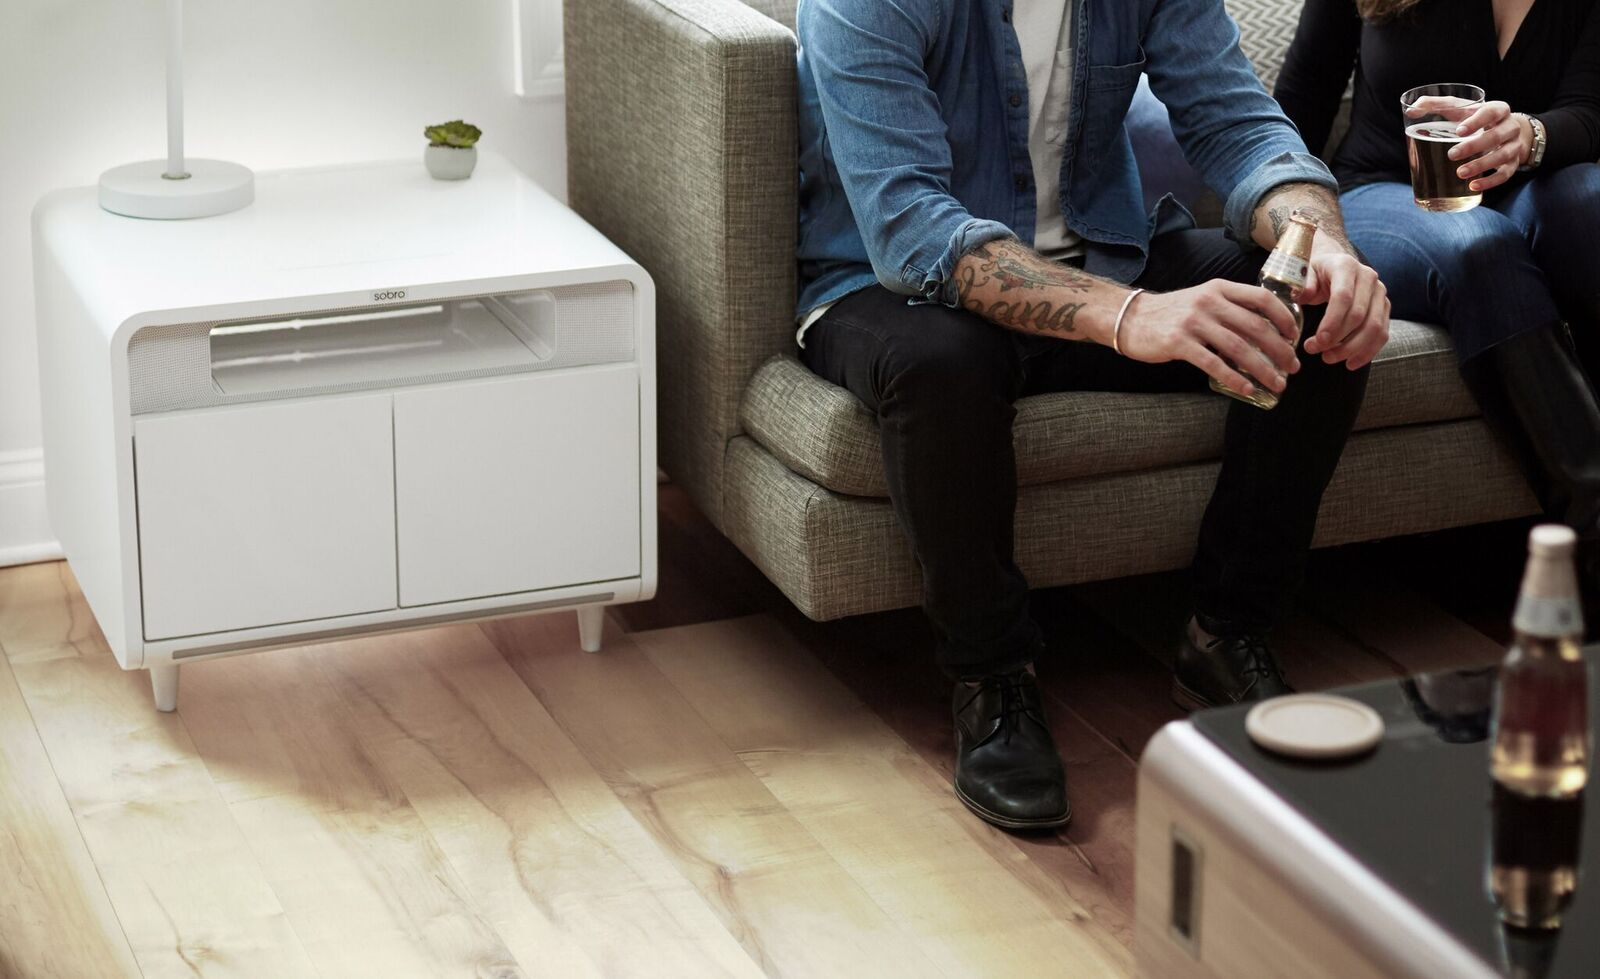 Sobro Smart Side Table | The Coolector